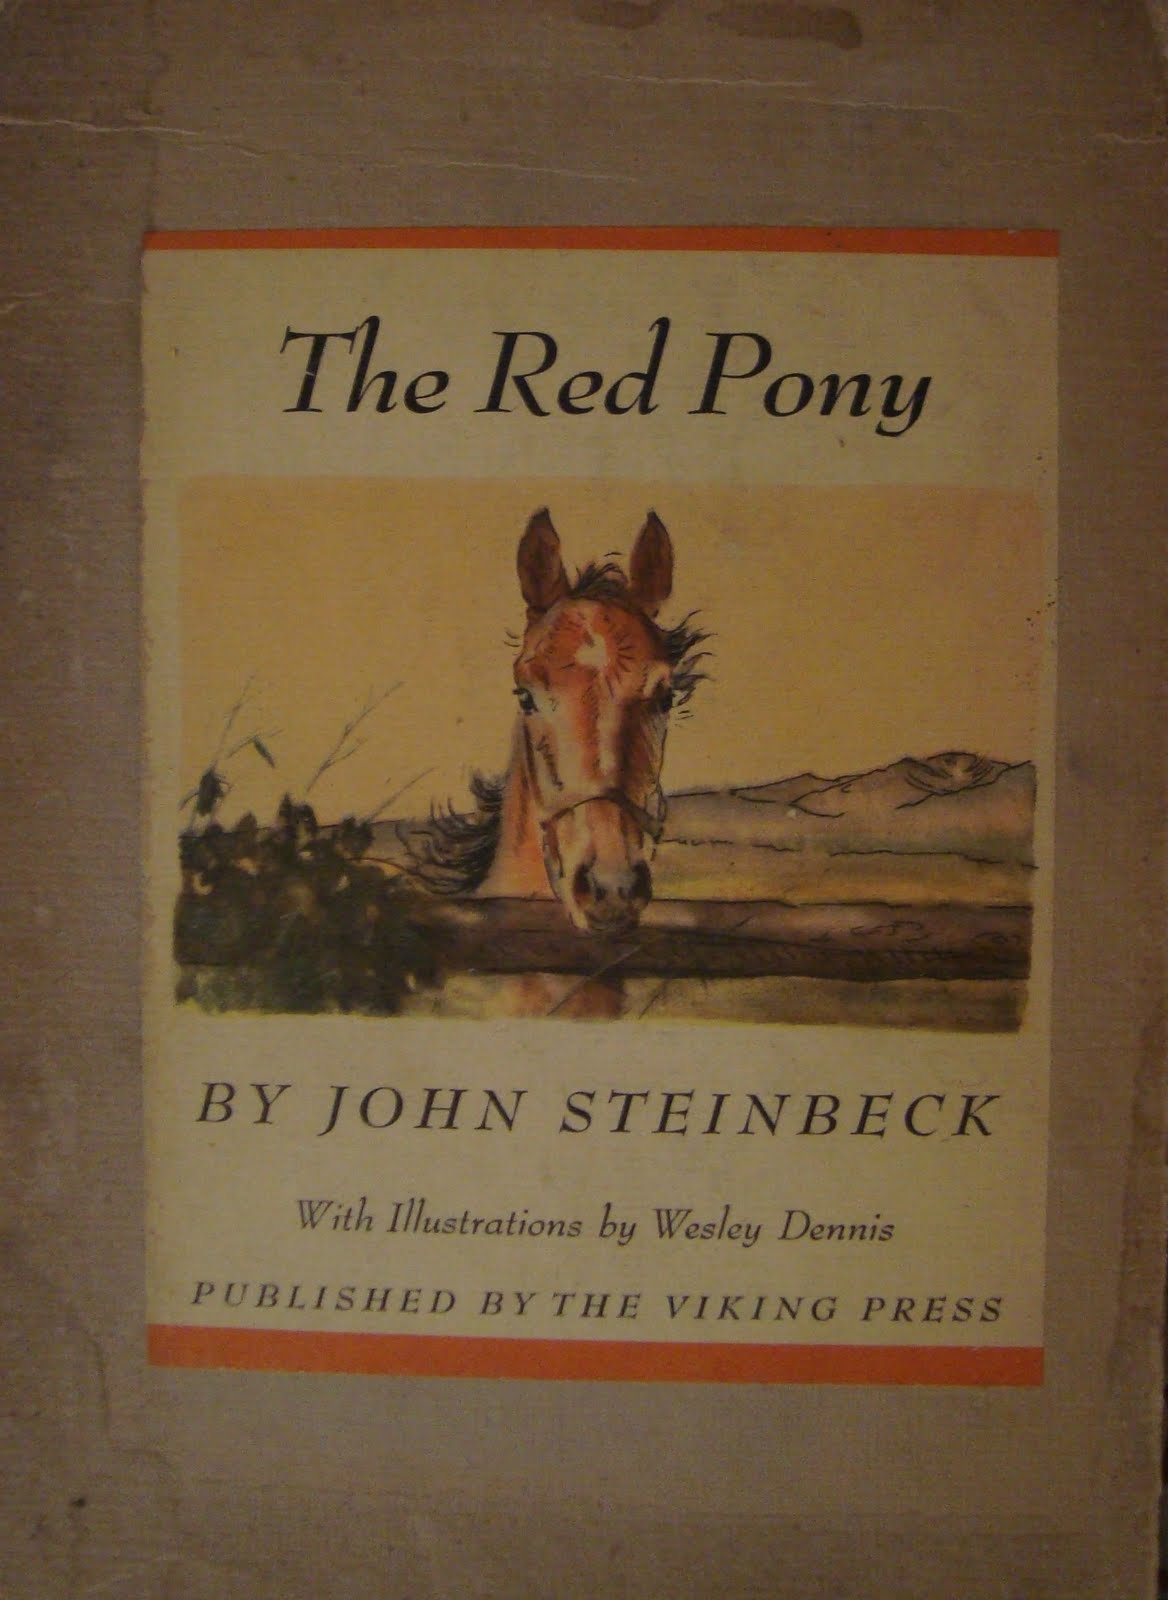 the red pony critical essay Free and custom essays at essaypediacom take a look at written paper - the red pony book description.